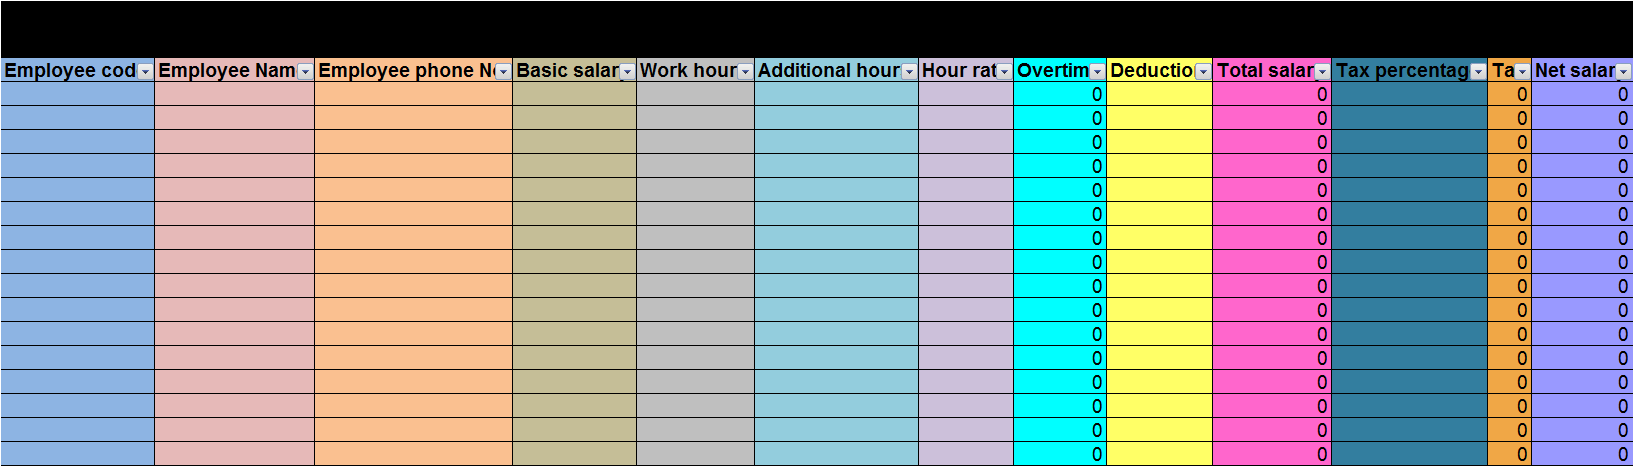 Spreadsheet to calculate employees' salaries